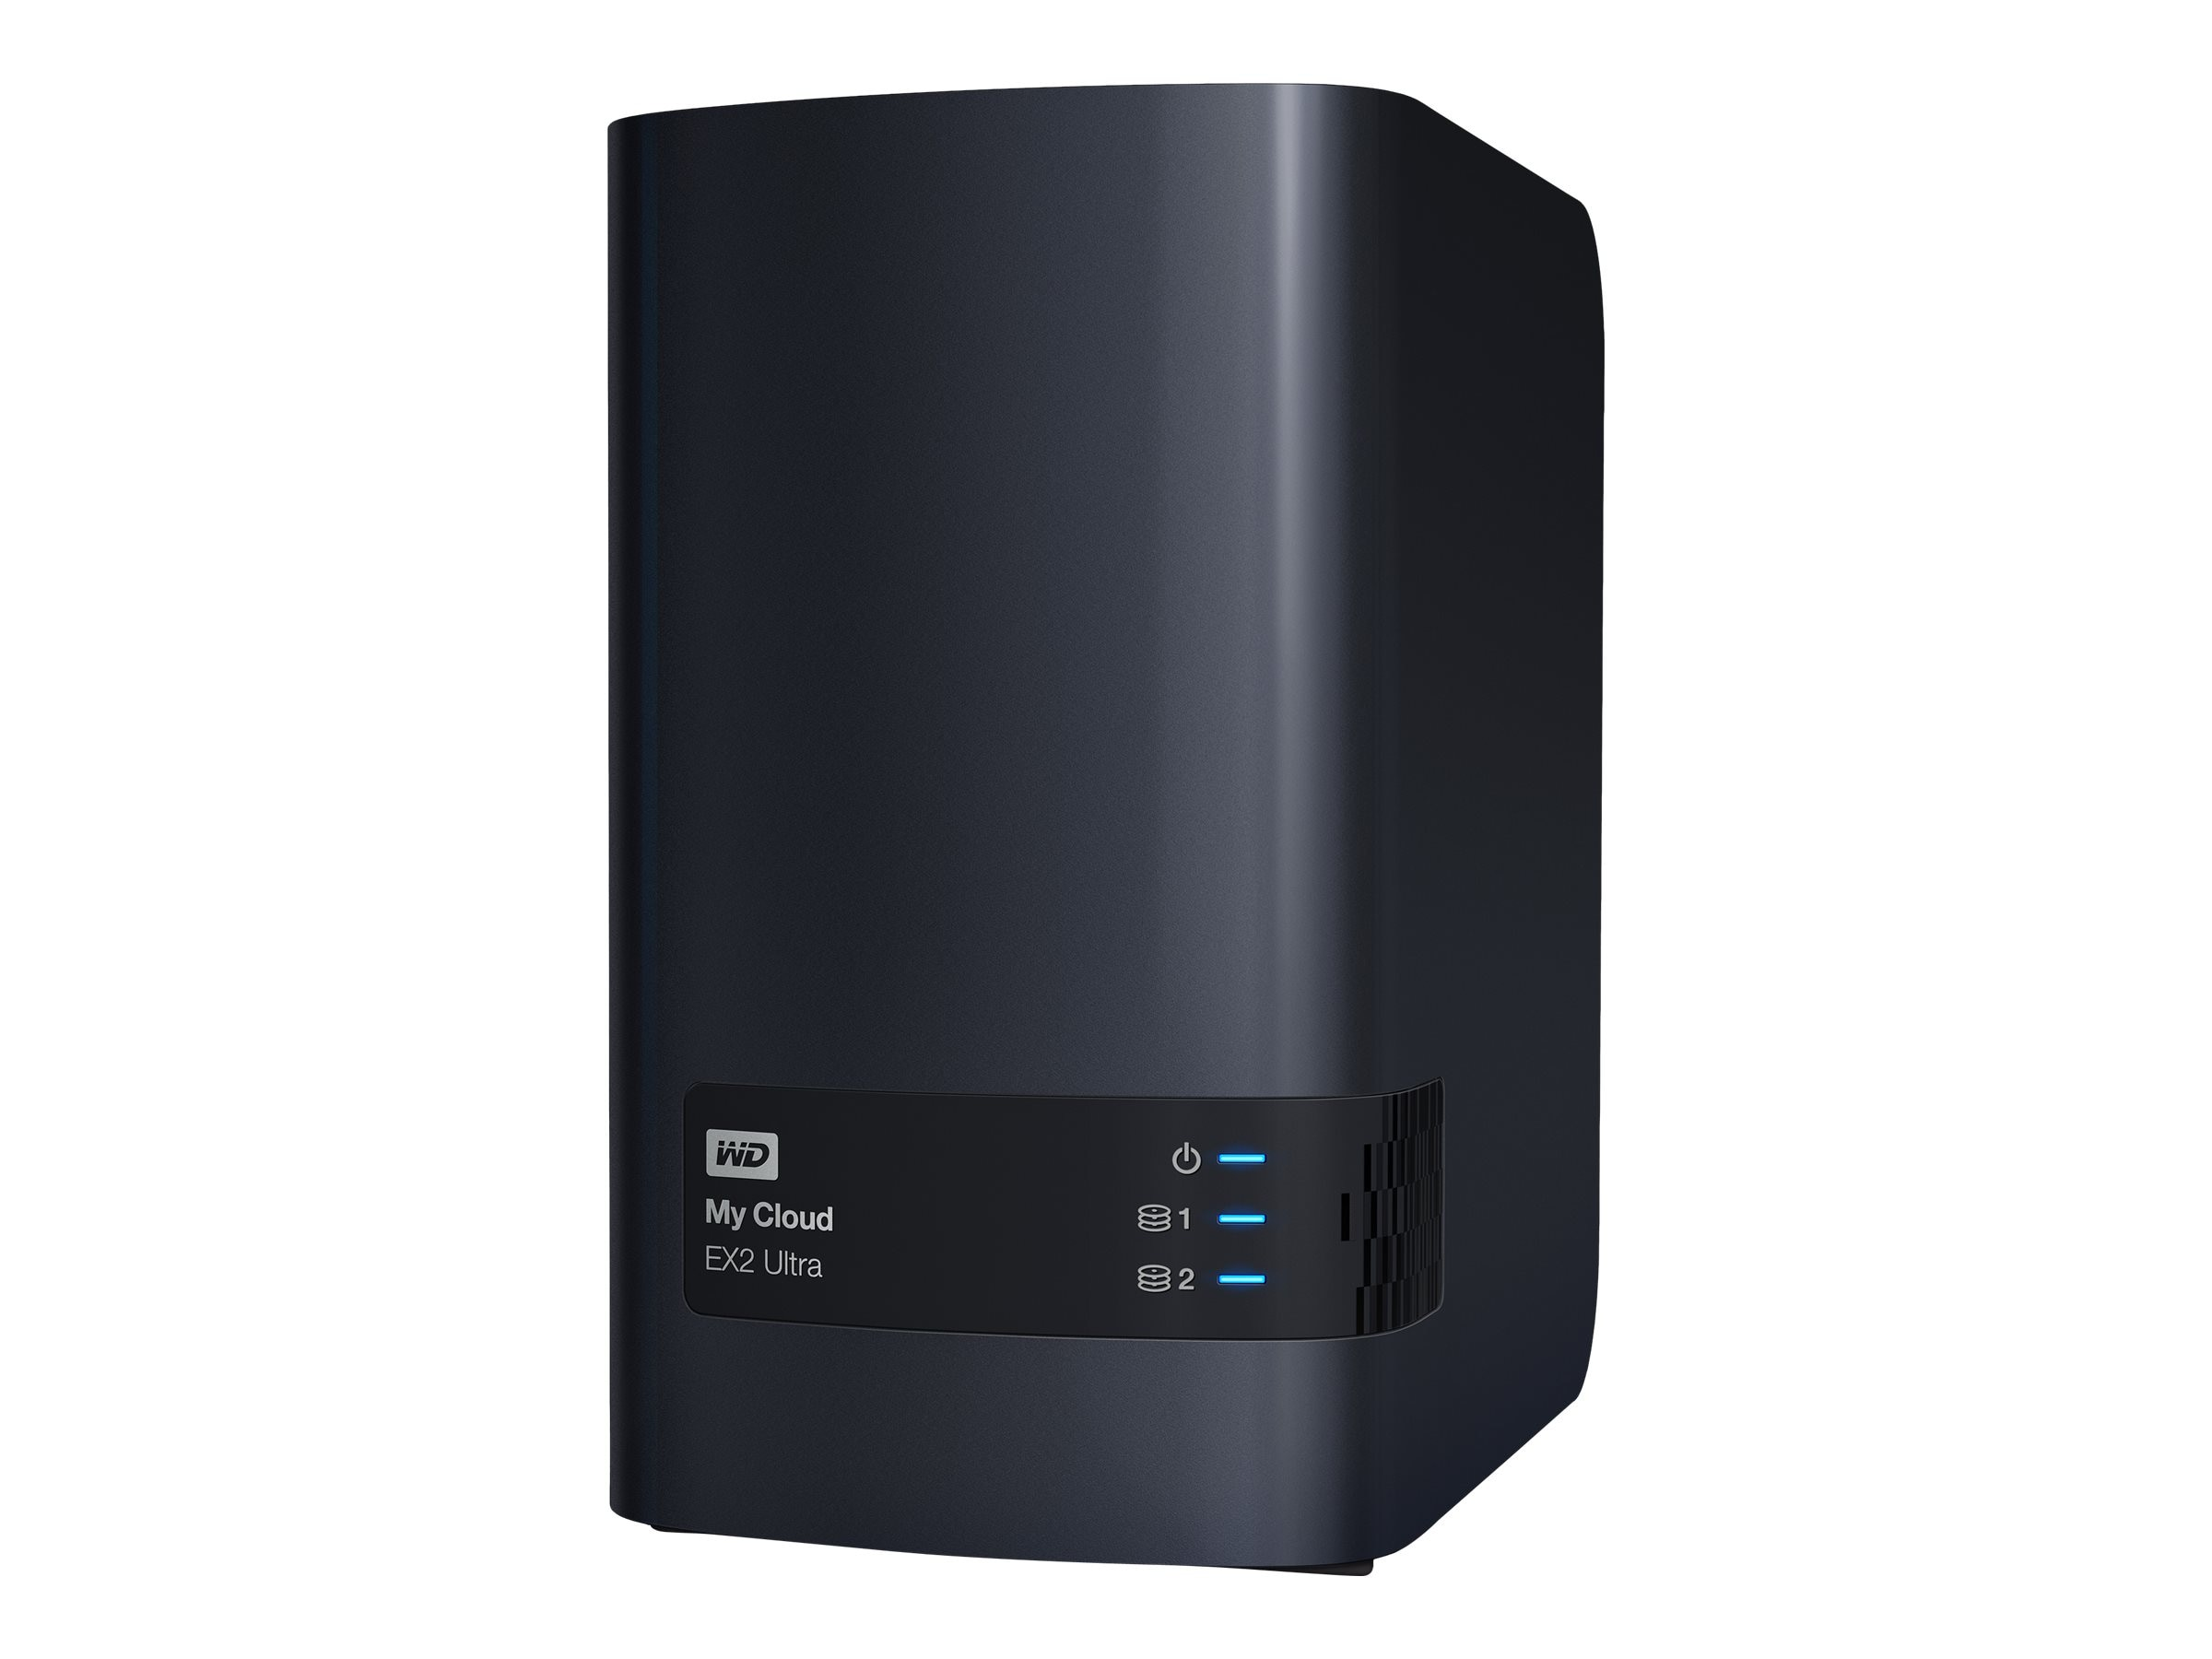 WD 4TB WD My Cloud EX2 Ultra Private Cloud NAS Storage, WDBVBZ0040JCH-NESN